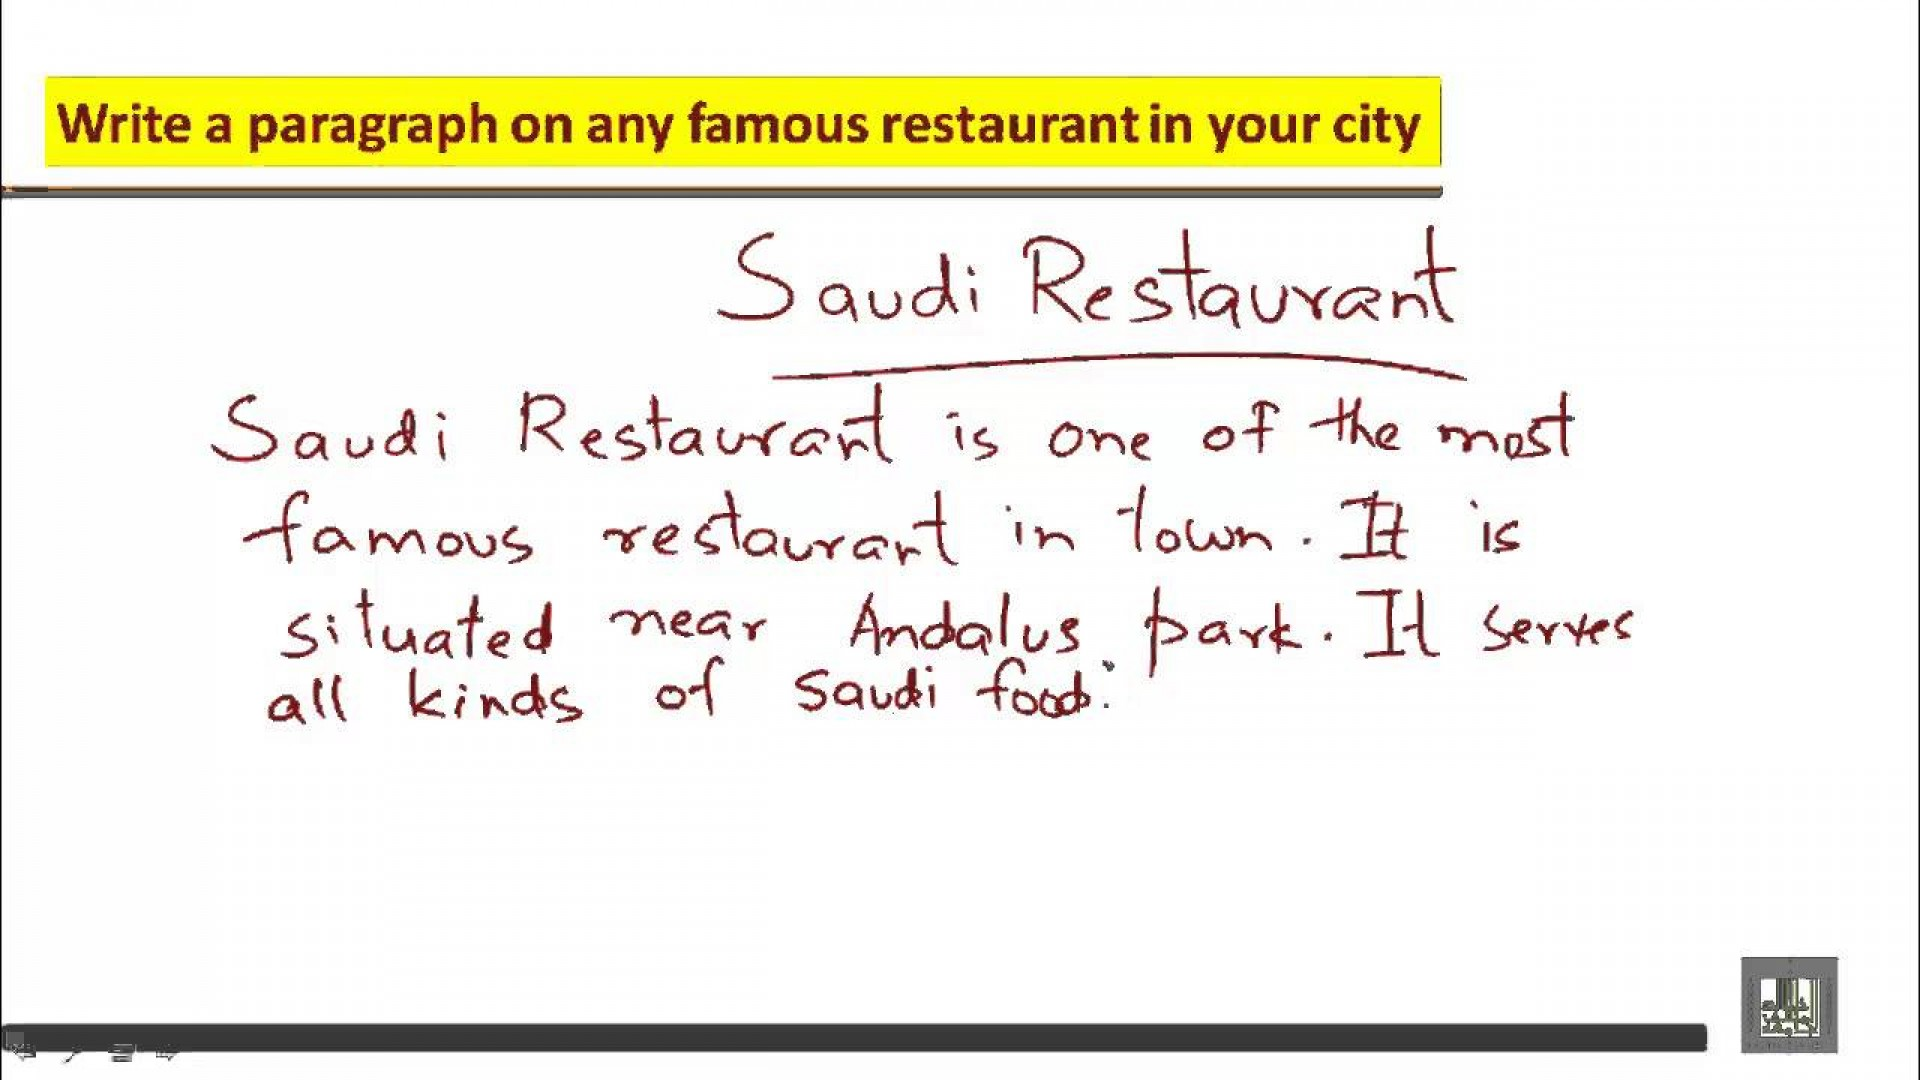 011 Essay About Favorite Restaurant Example Beautiful Your Write An 1920